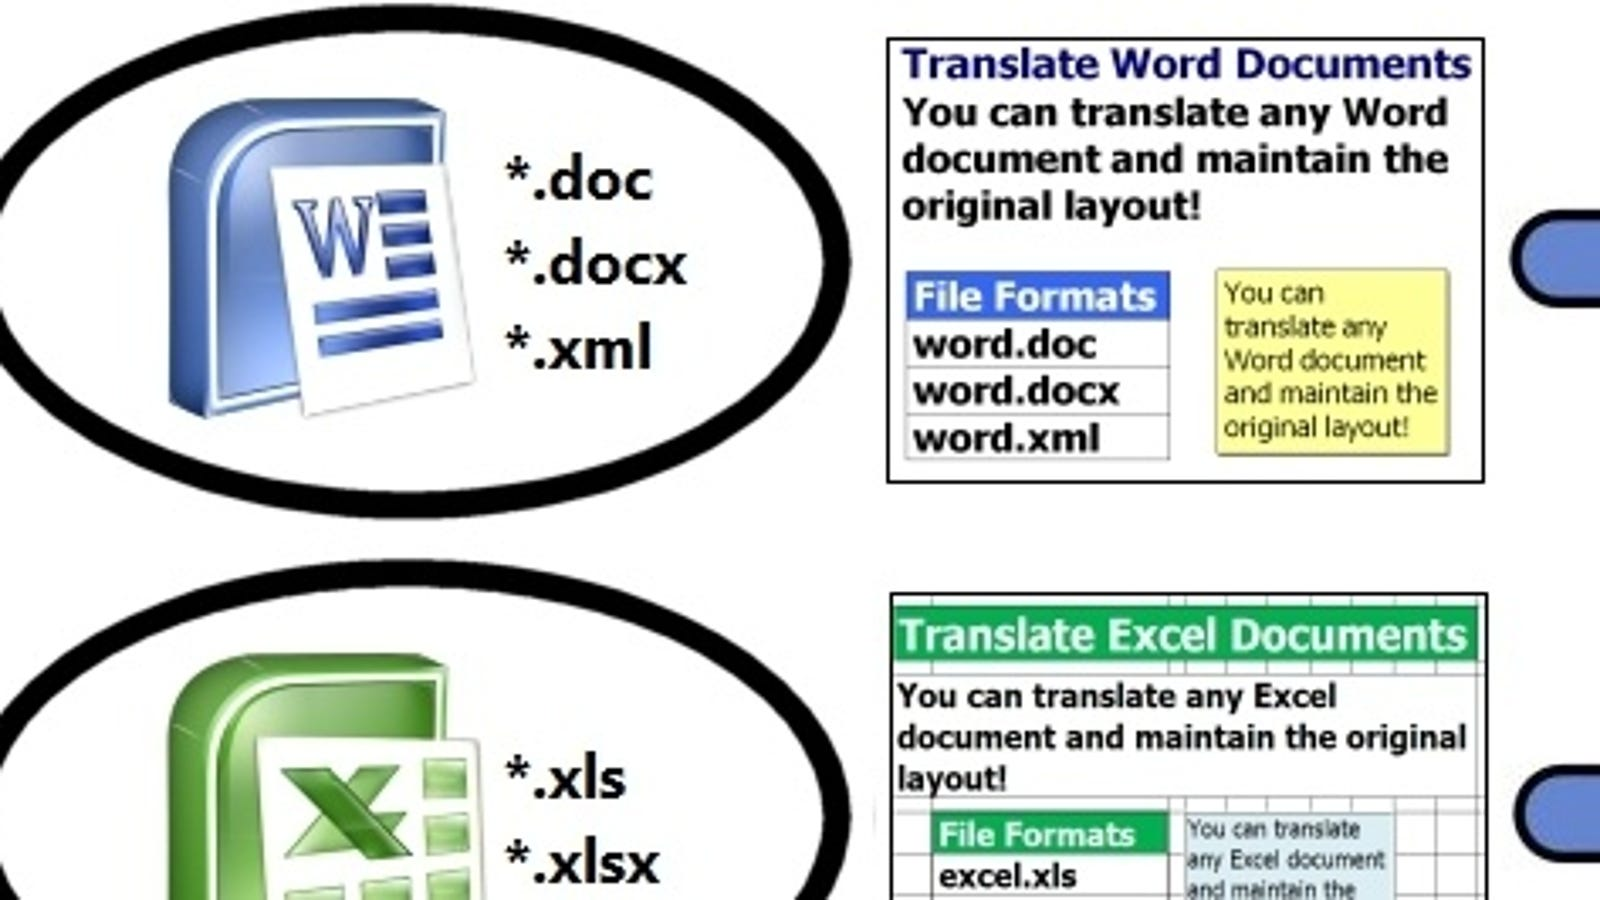 Free templates 2019 google doc translate free templates google doc translate hundreds of documents in our library are free download for personal use download our modern editable and targeted templates urtaz Gallery